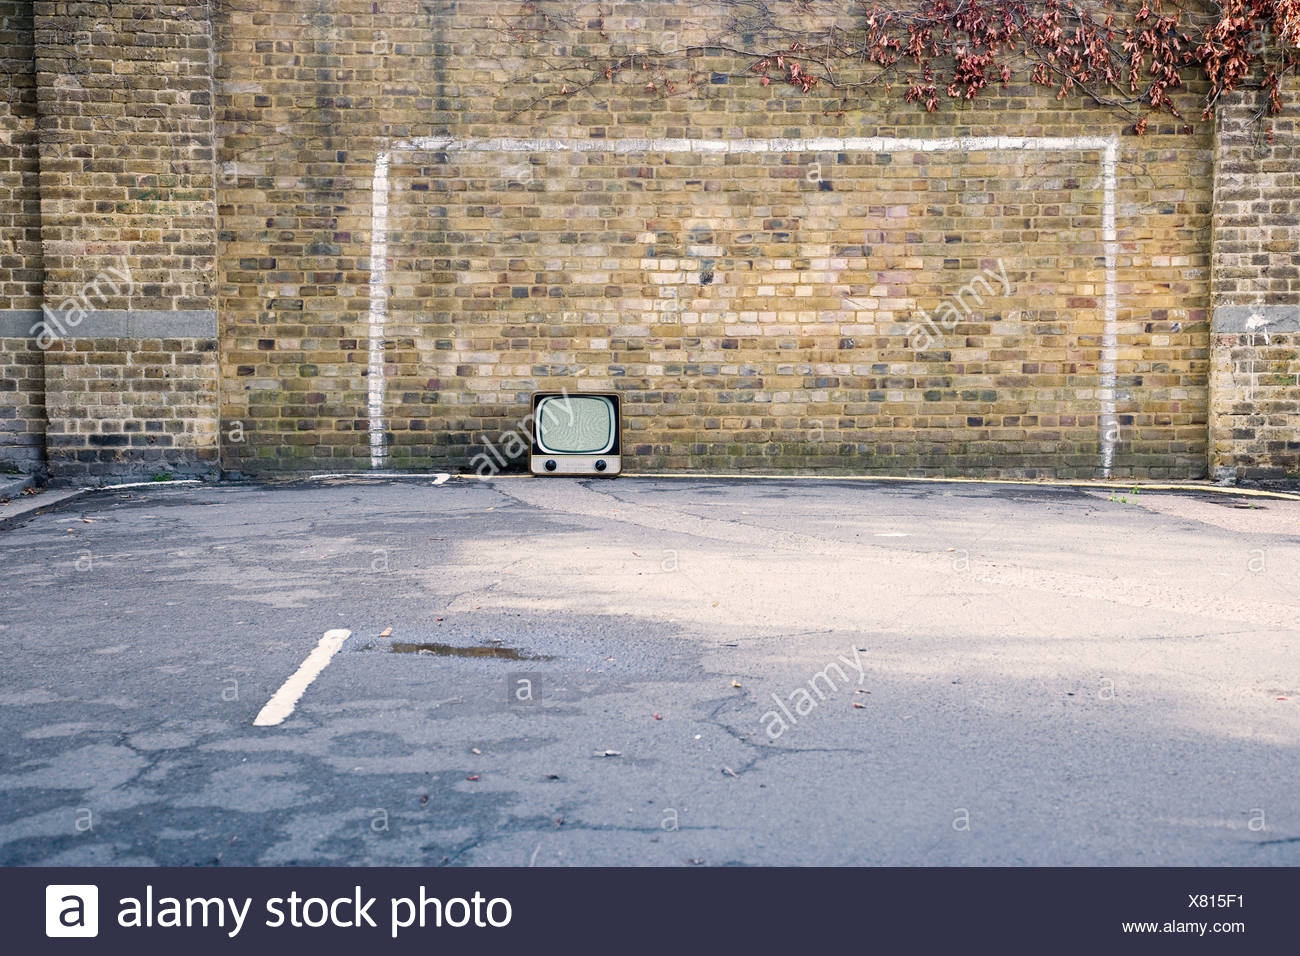 Retro television in football goal painted on brick wall - Stock Image